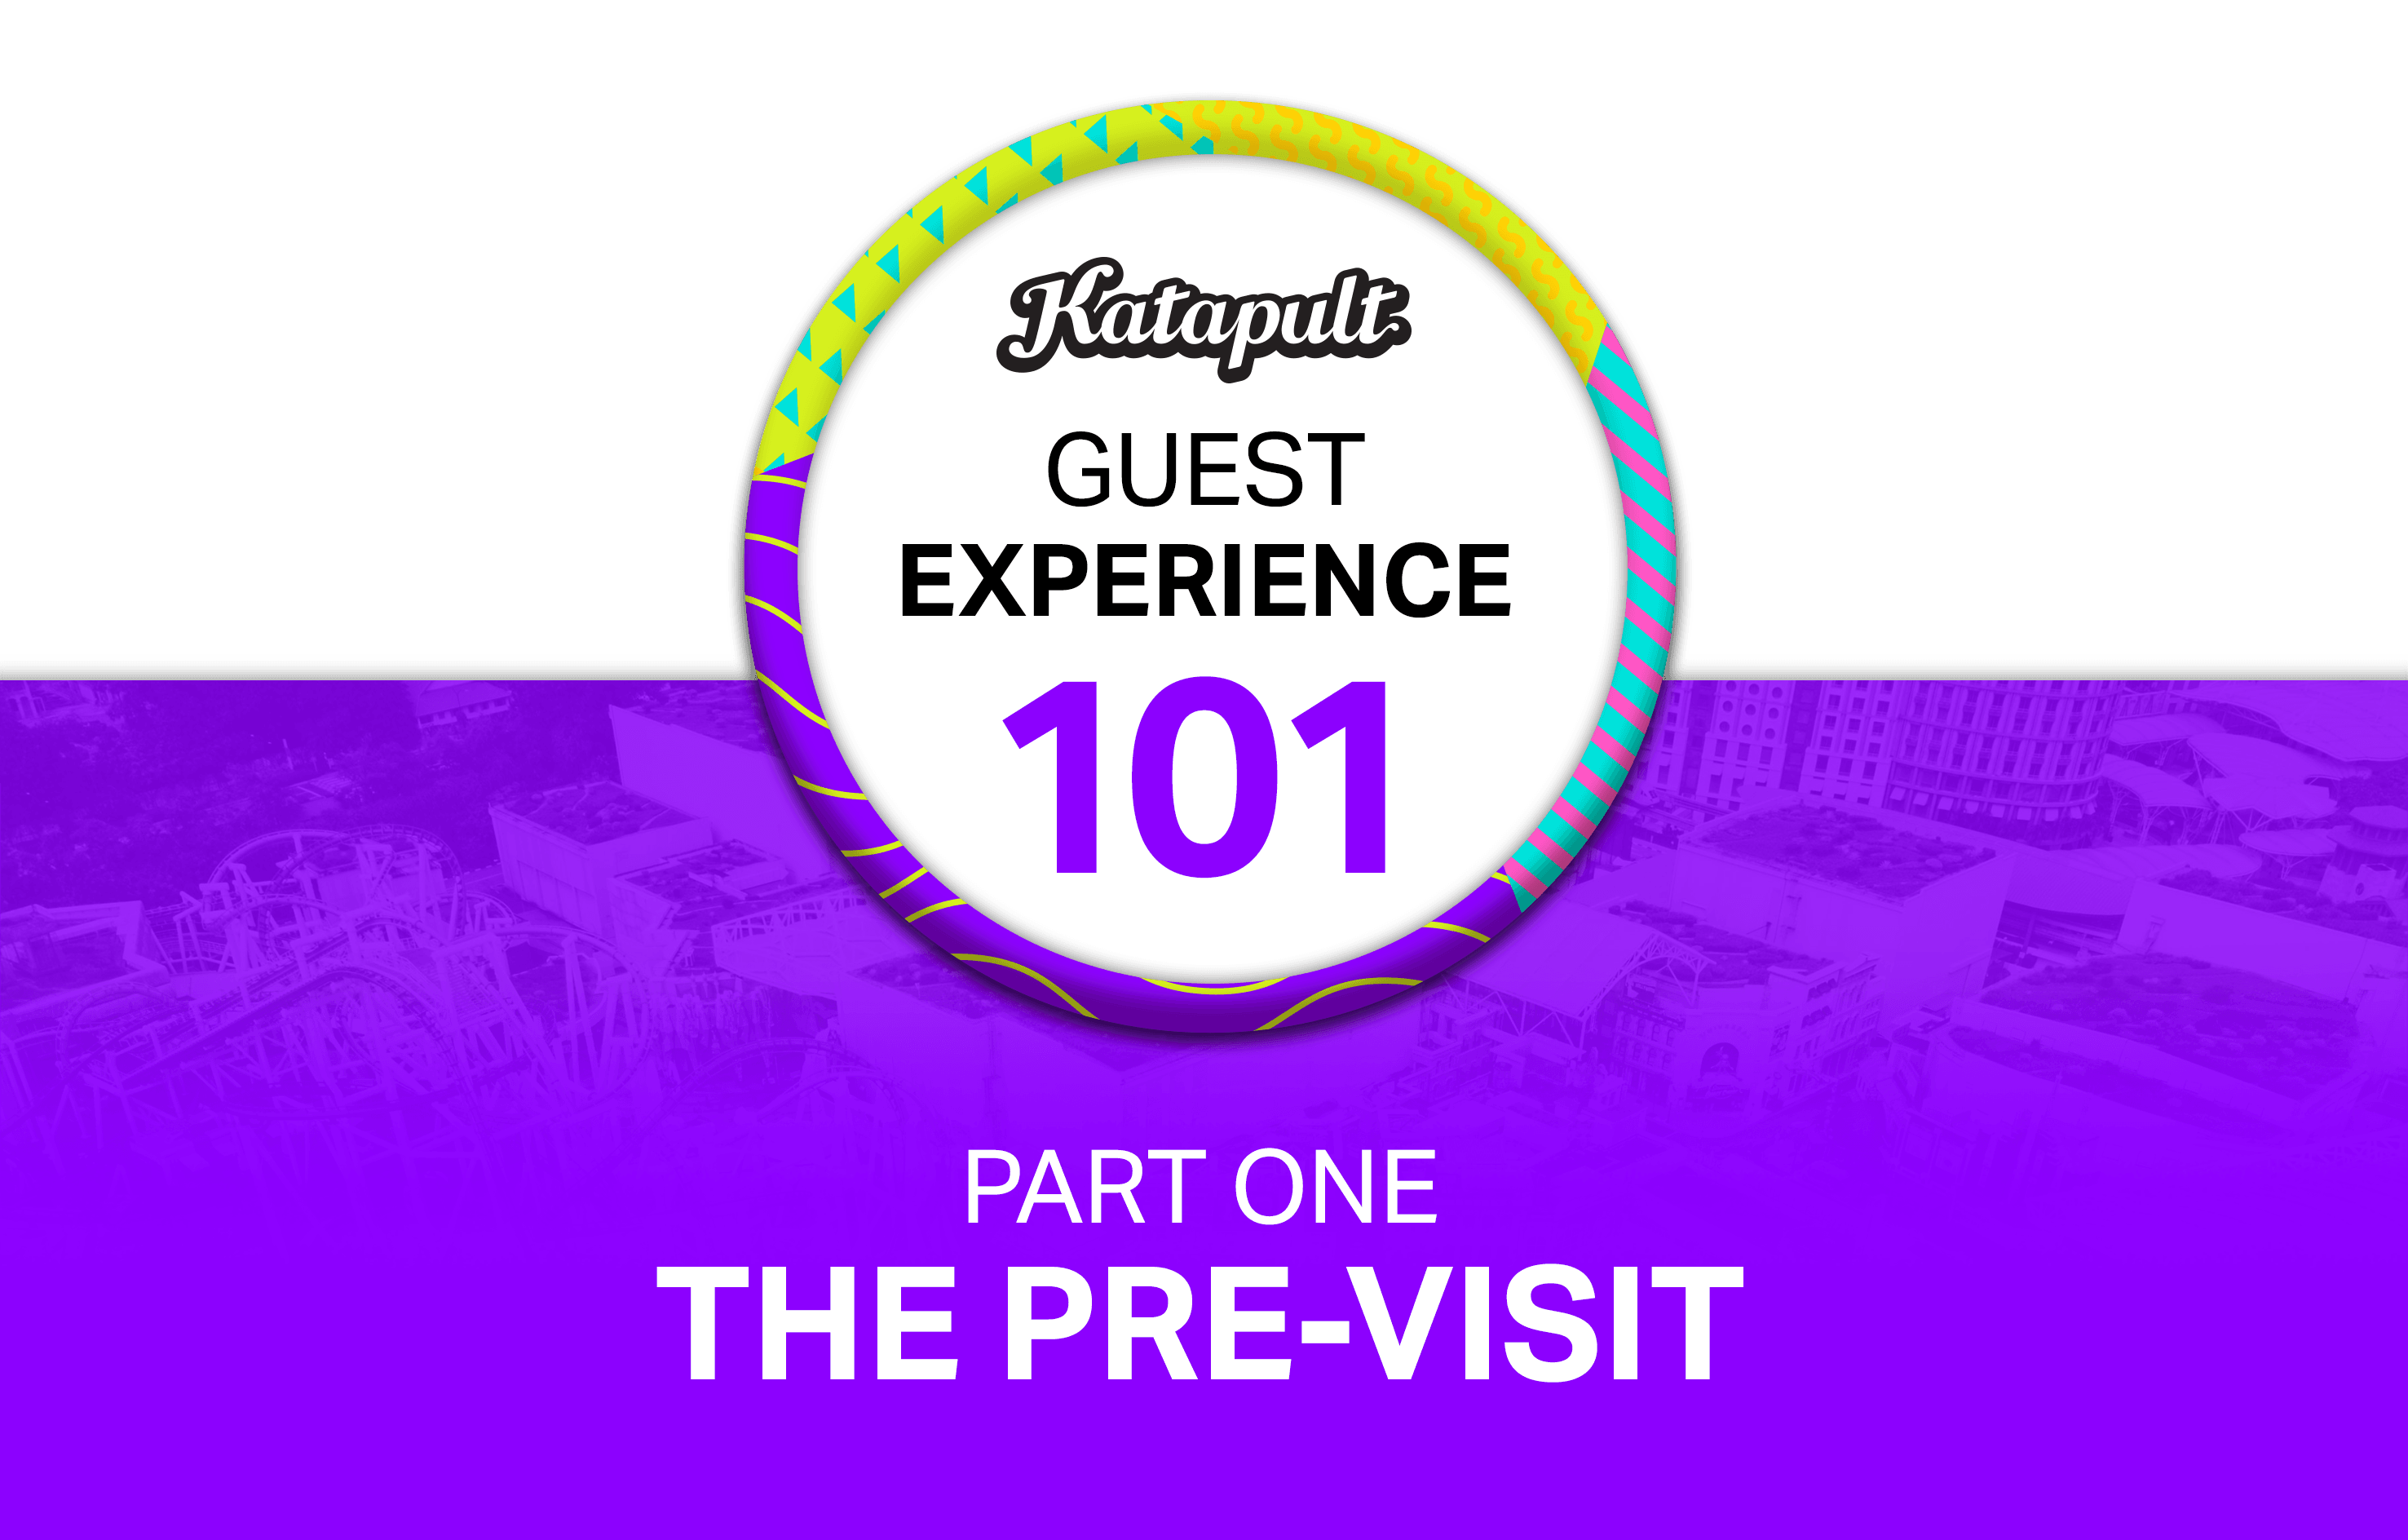 Guest experience 101 - The pre-visit